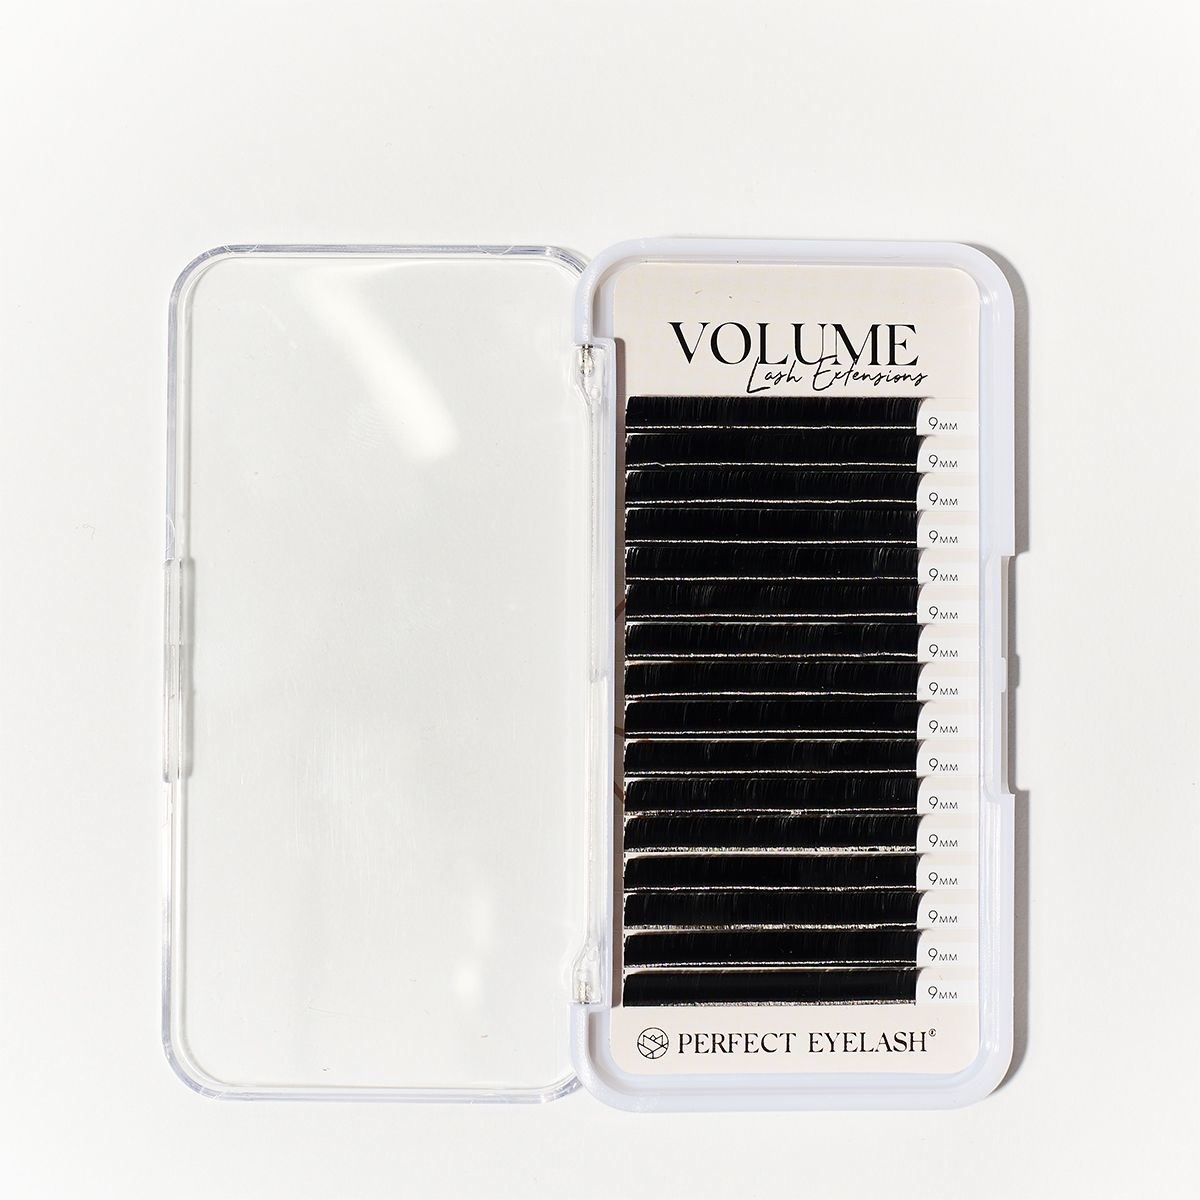 Volume Lashes - Perfect Eyelash - MIX-2